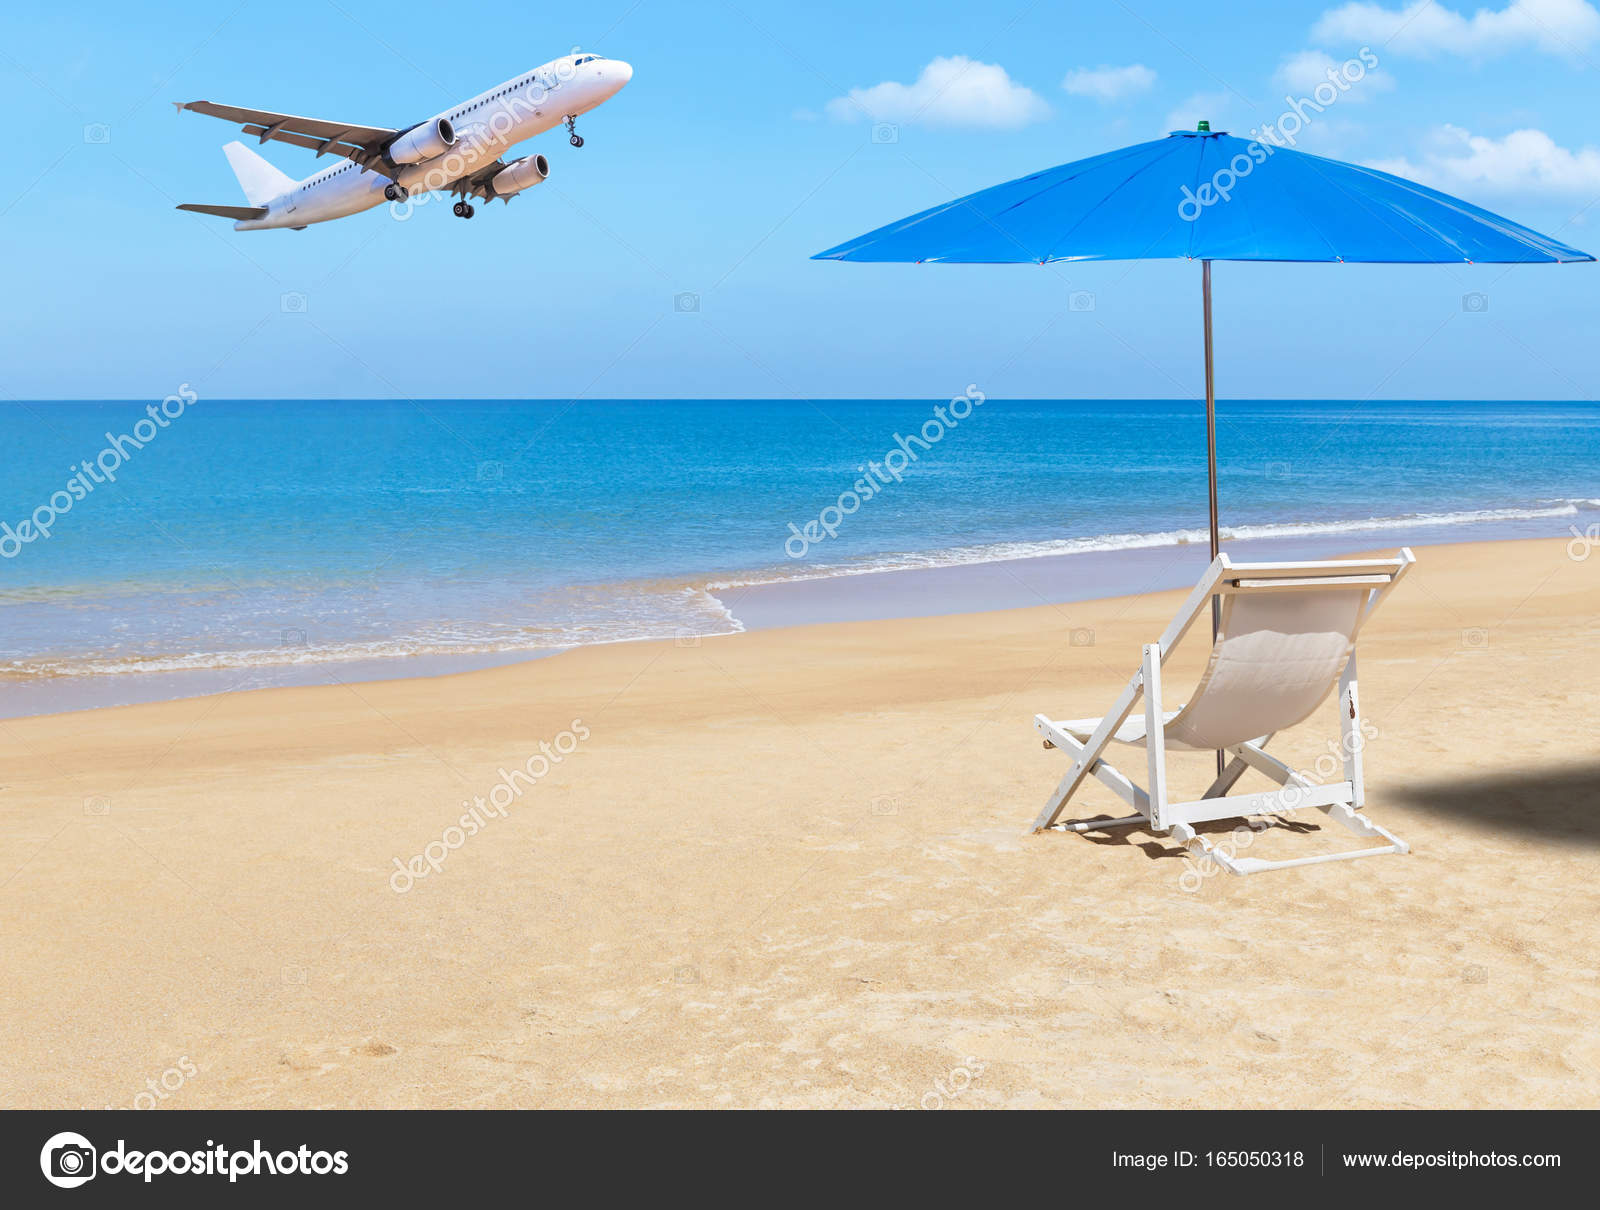 air travel beach chairs table and chair set for 8 year old passenger airplane flying landing above tropical with white wooden blue parasol on sky background destinations concept